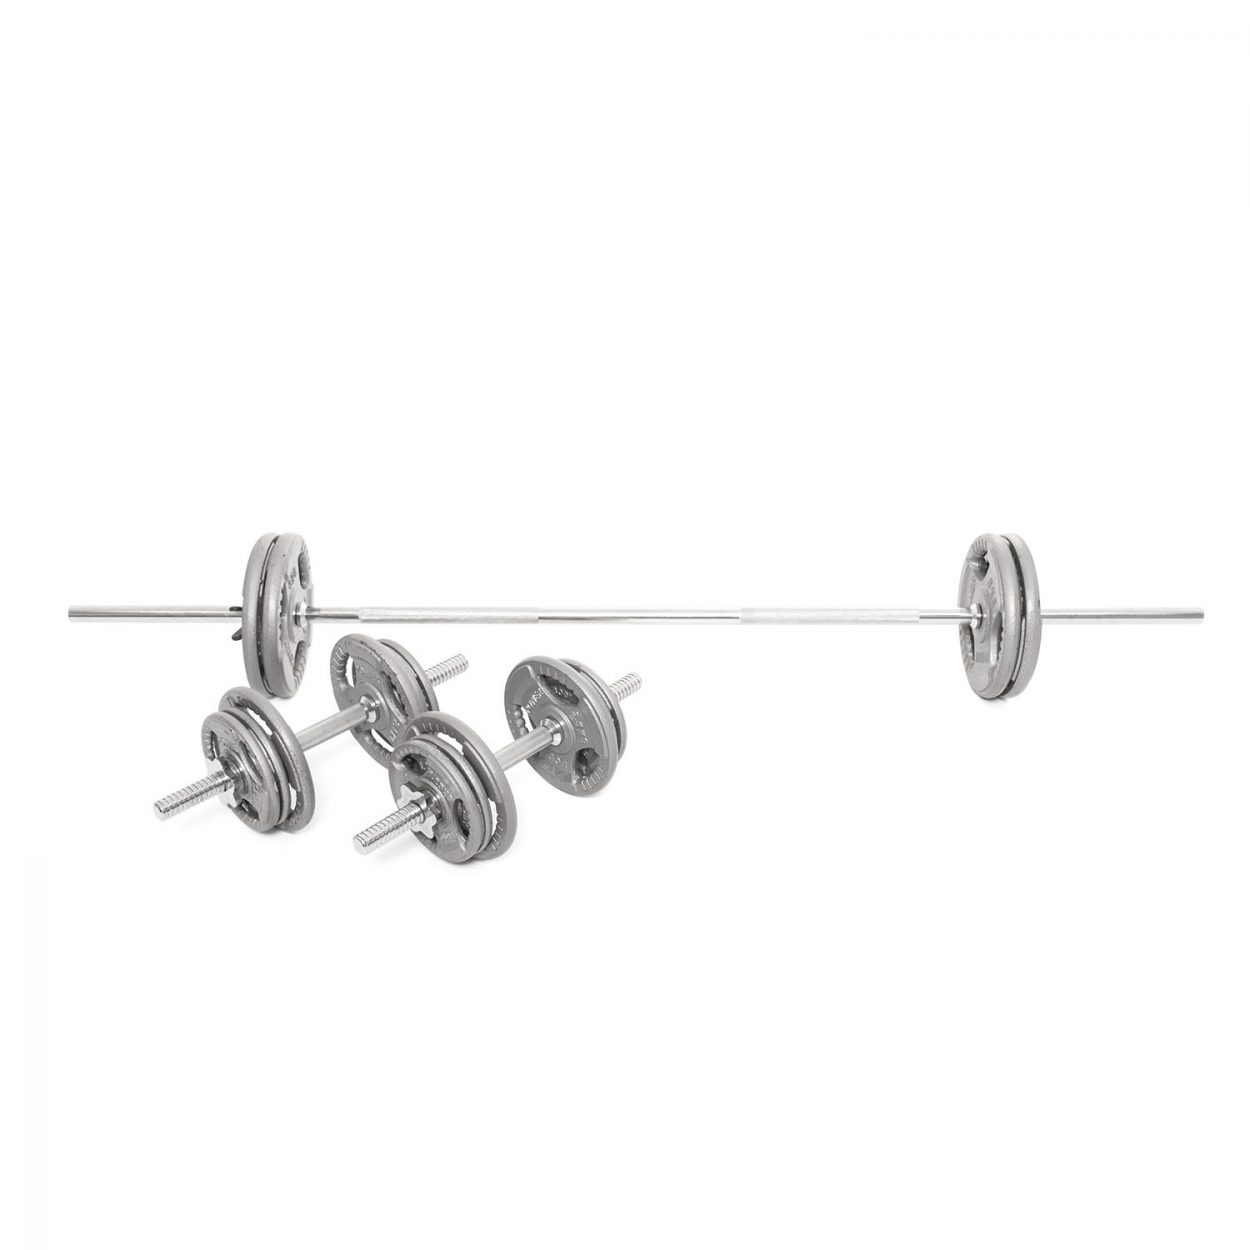 Body Power 51Kg 6FT Tri-Grip Combi Standard Weight Set